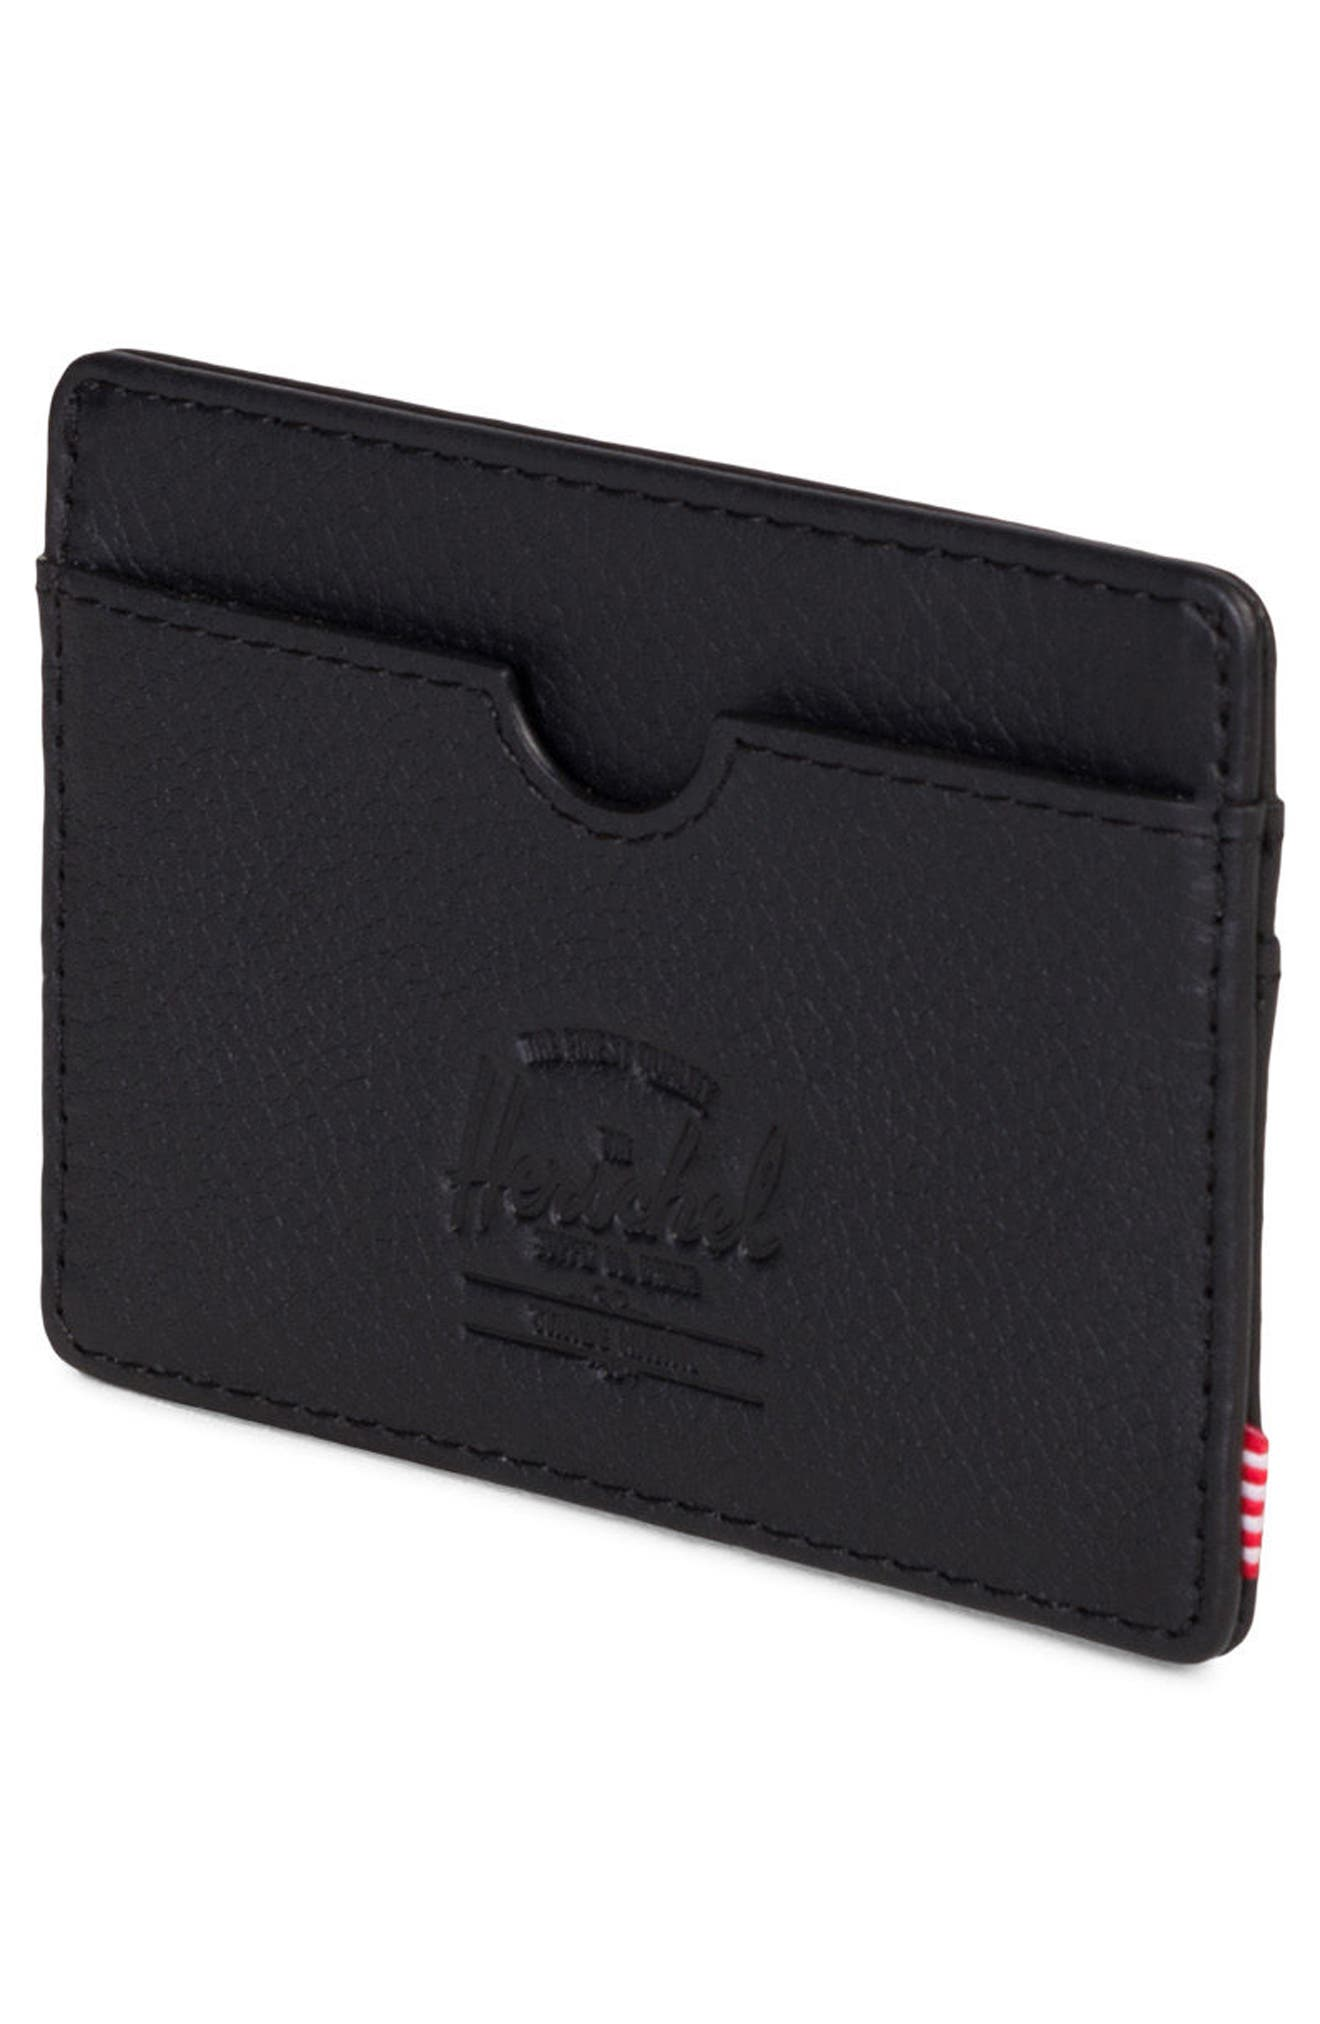 Charlie Leather Card Case,                             Alternate thumbnail 4, color,                             005